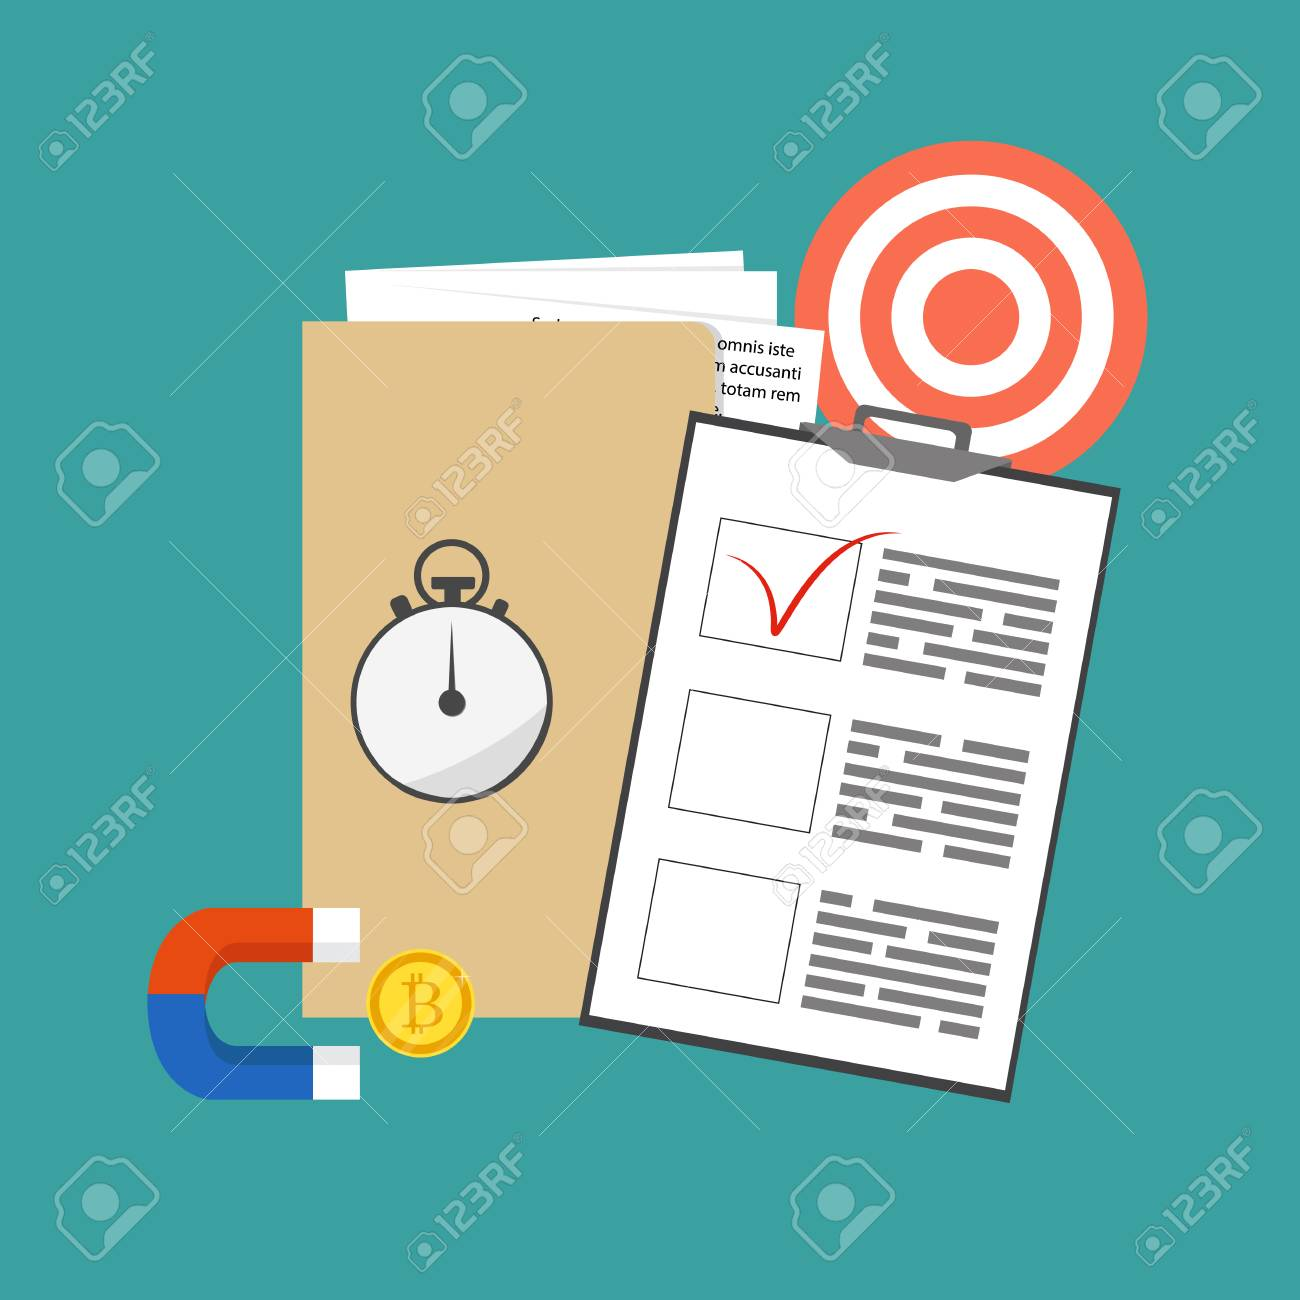 Business training course icon. Online education and video tutorials concept. Vector illustration - 110474728